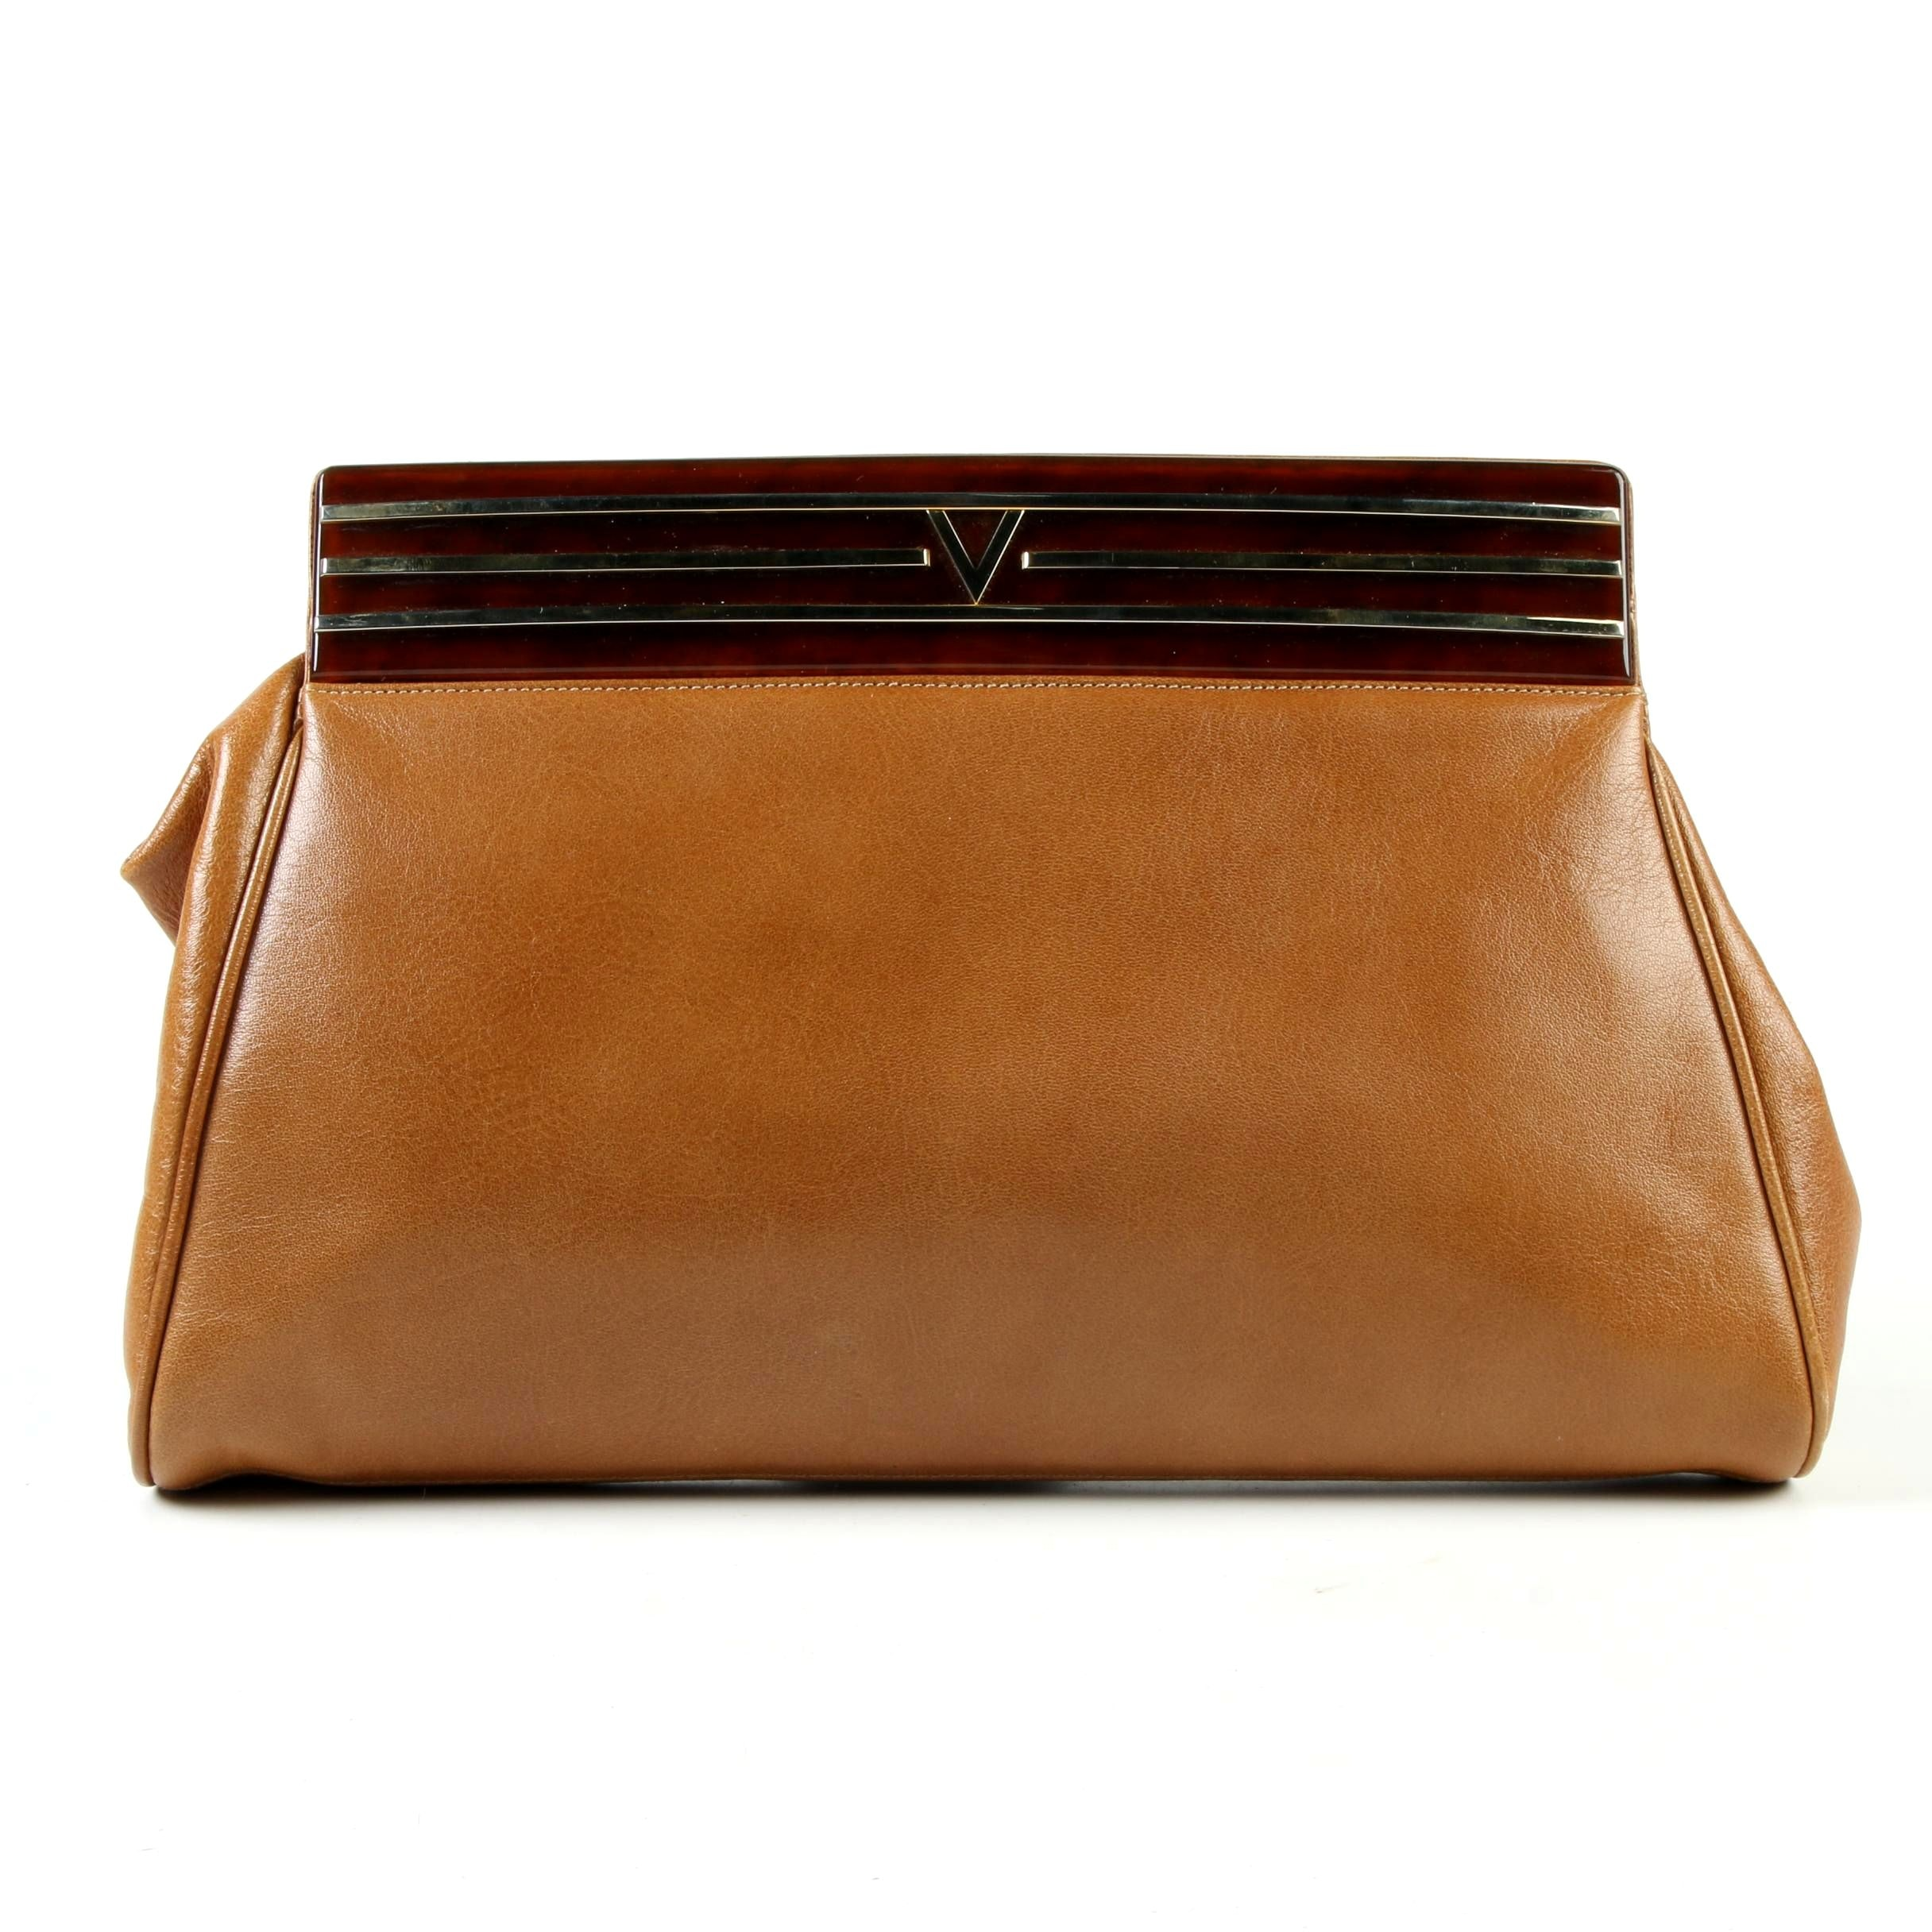 Mario Valentino Tan Leather Clutch with Faux Tortoise Frame Accent, Vintage